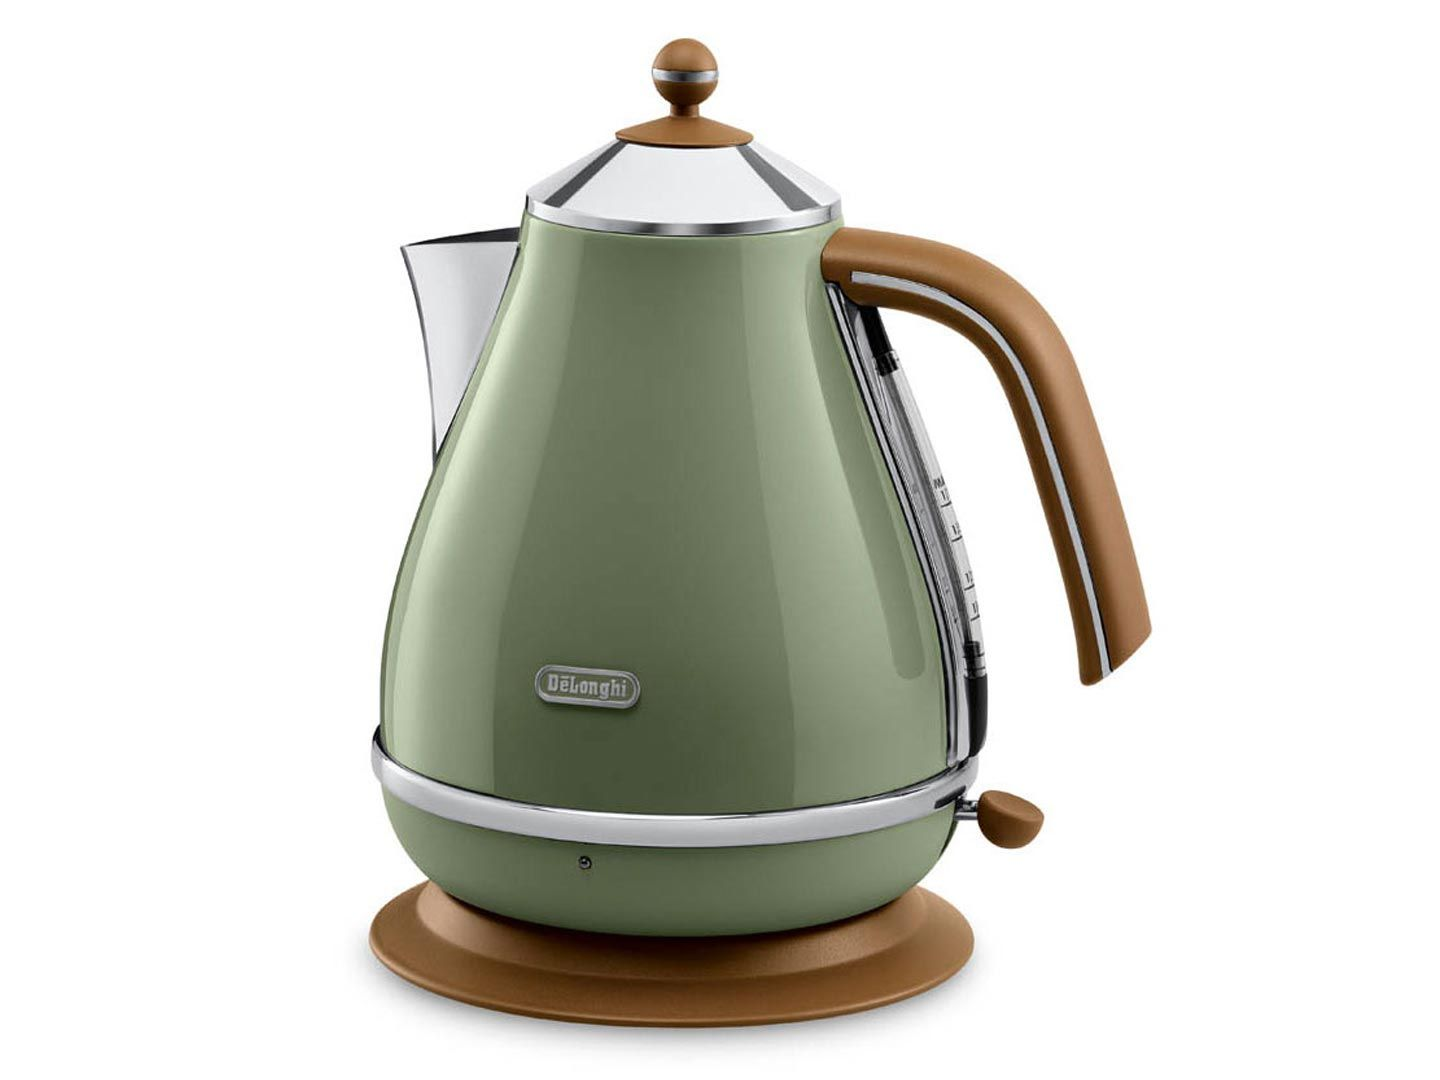 Kbov2001 Gr Delonghi France Sunday Kind Of Love Green